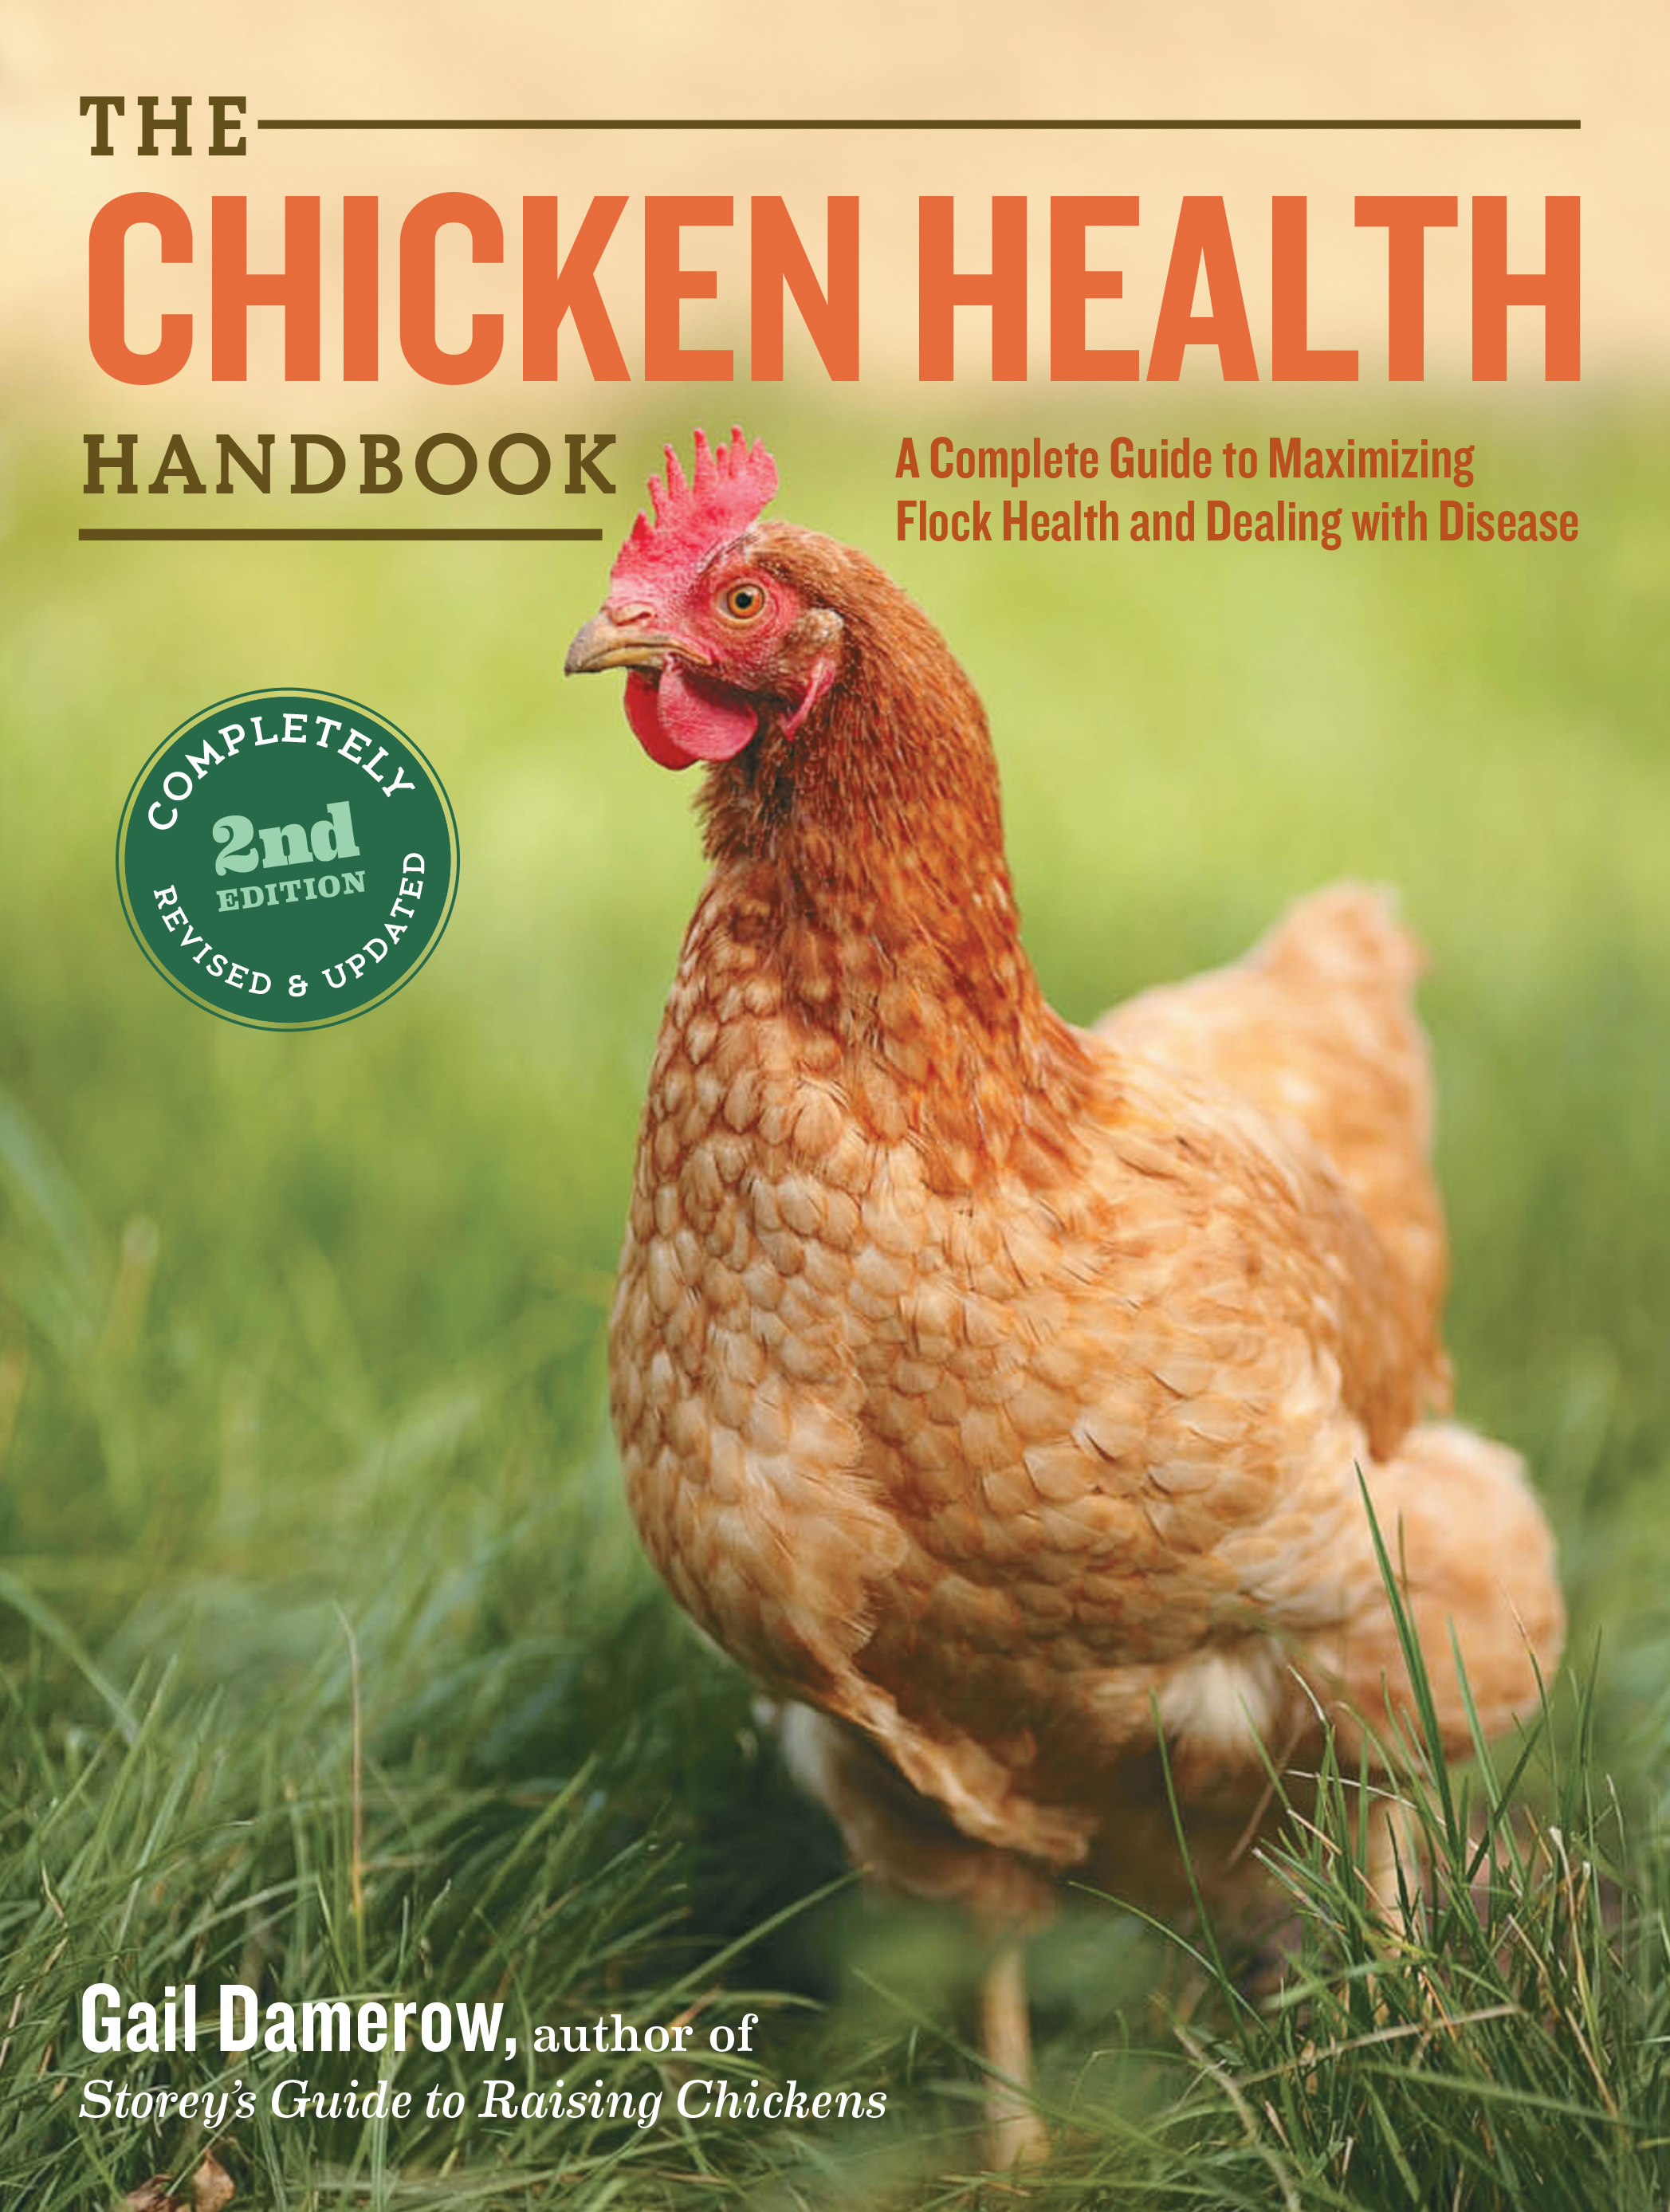 The Chicken Health Handbook, 2nd Edition A Complete Guide to Maximizing Flock Health and Dealing with Disease - Gail Damerow